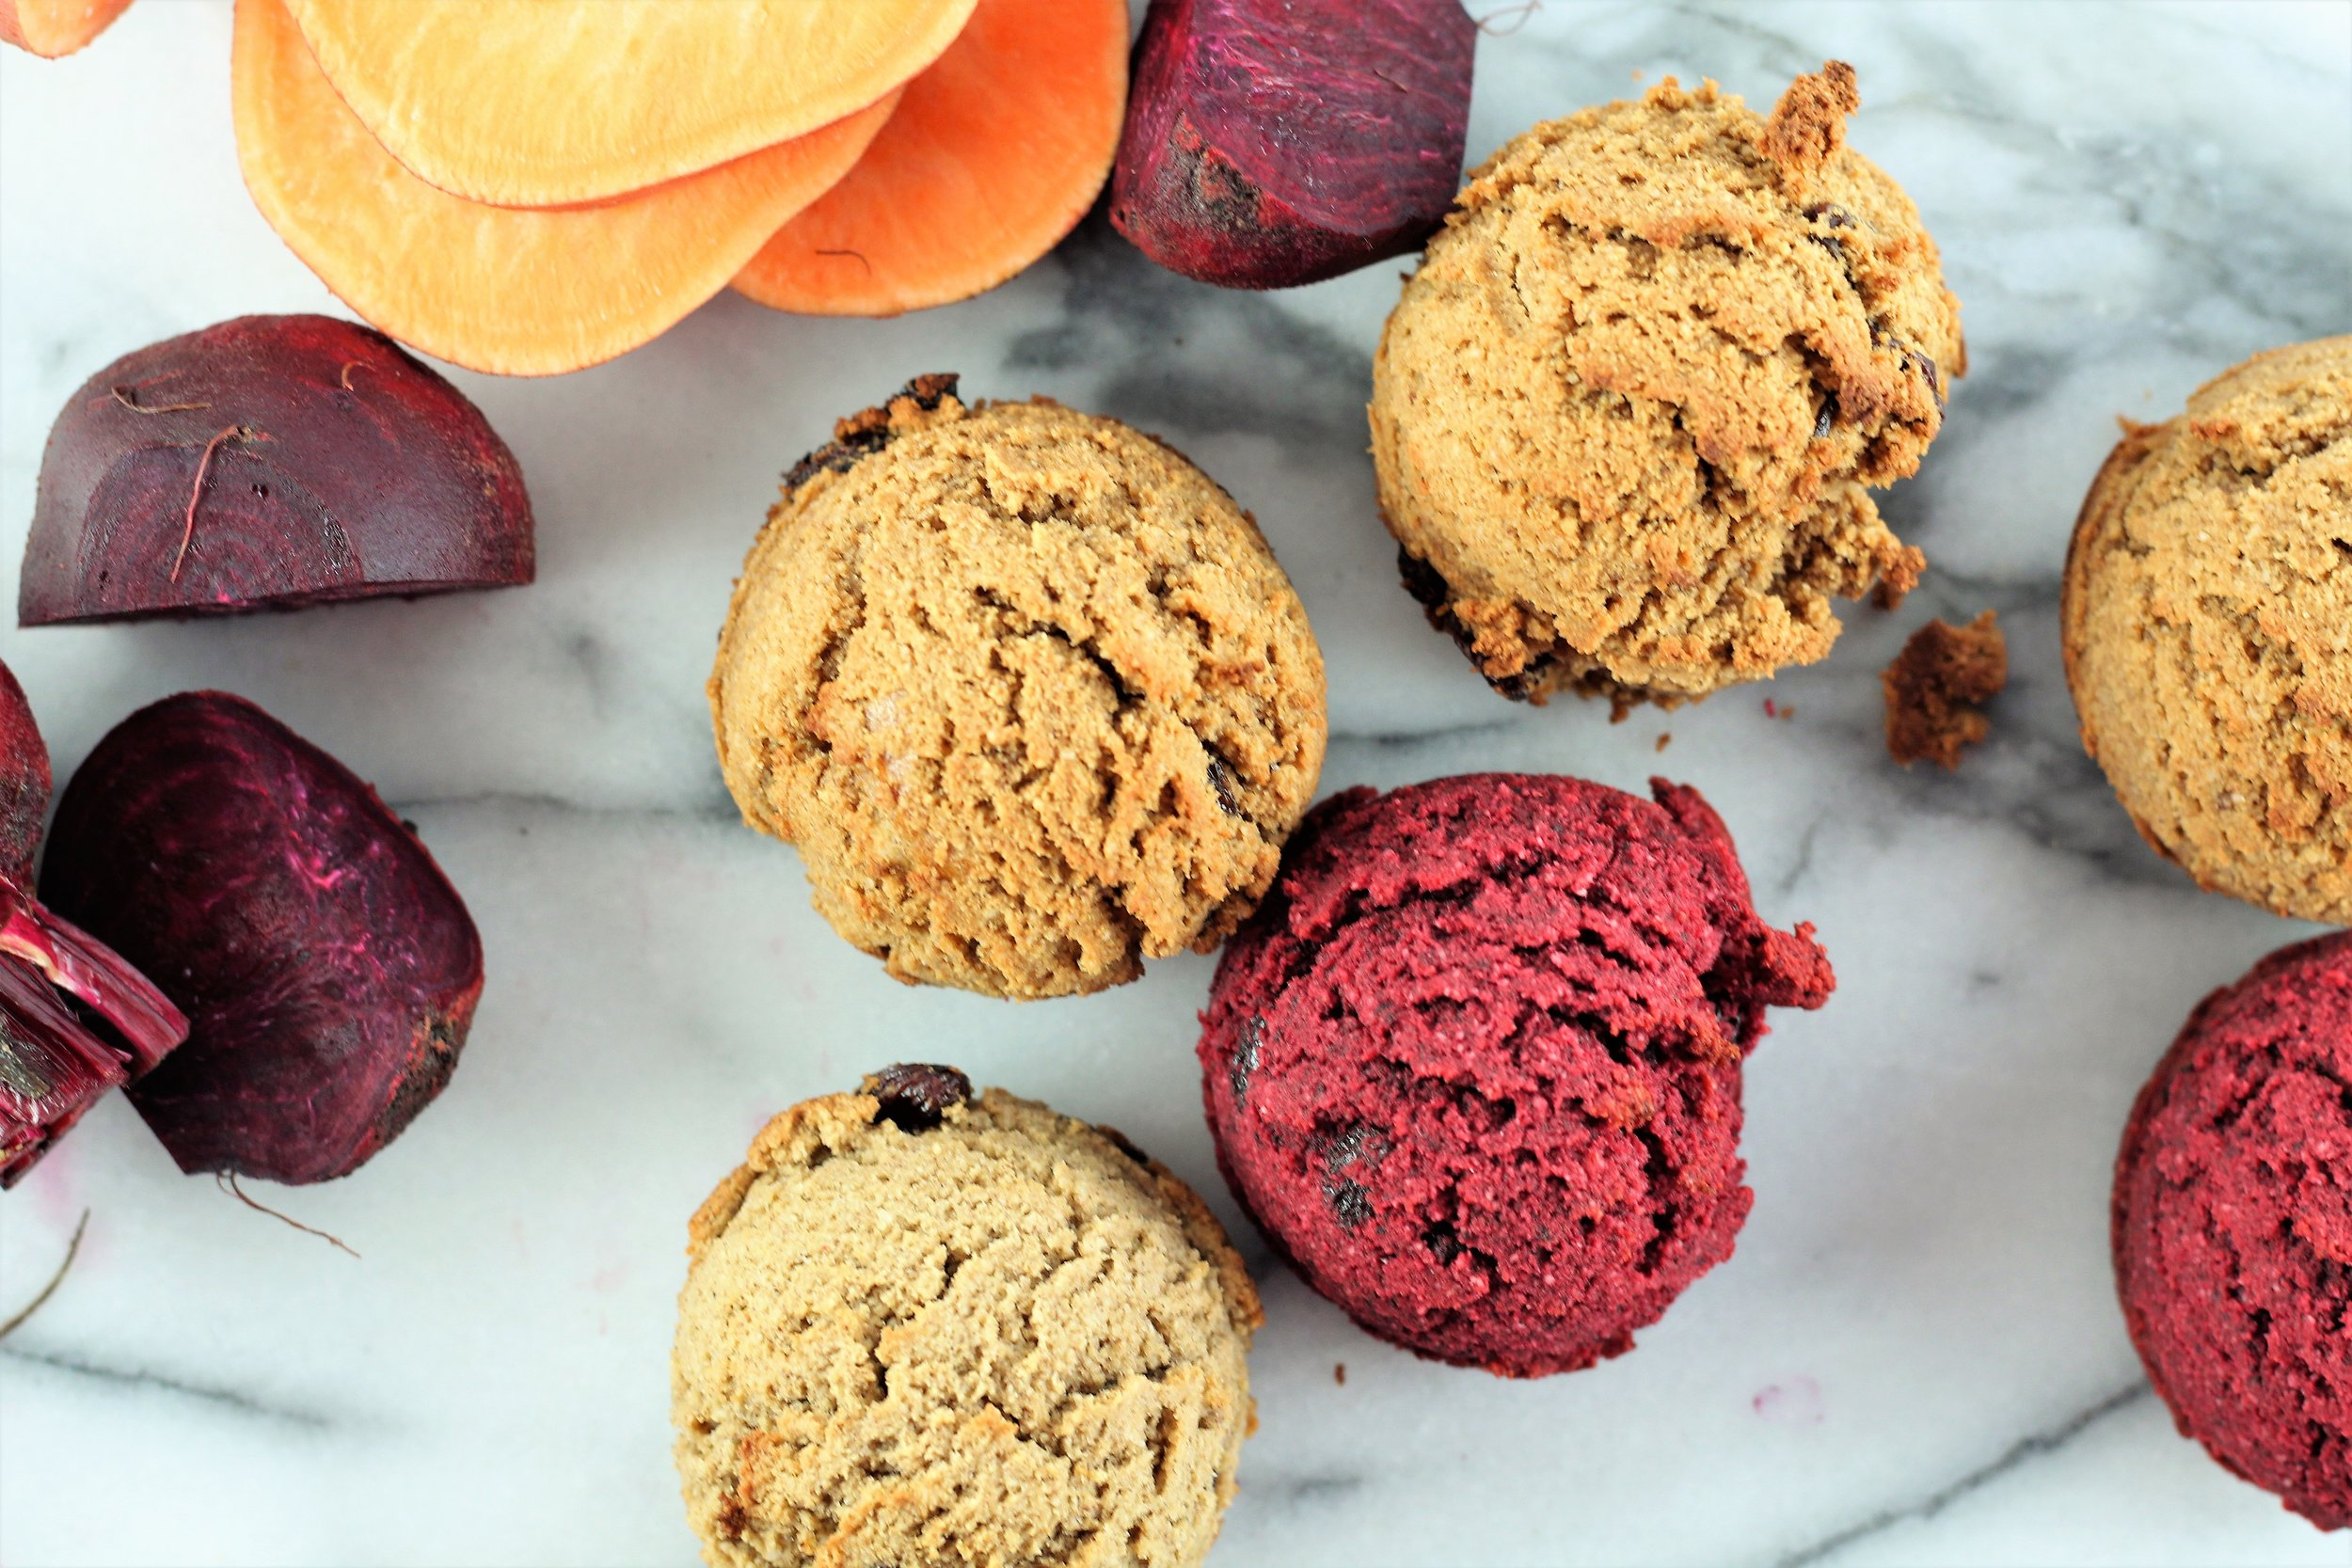 Paleo Cinnamon Raisin Superfood Muffins